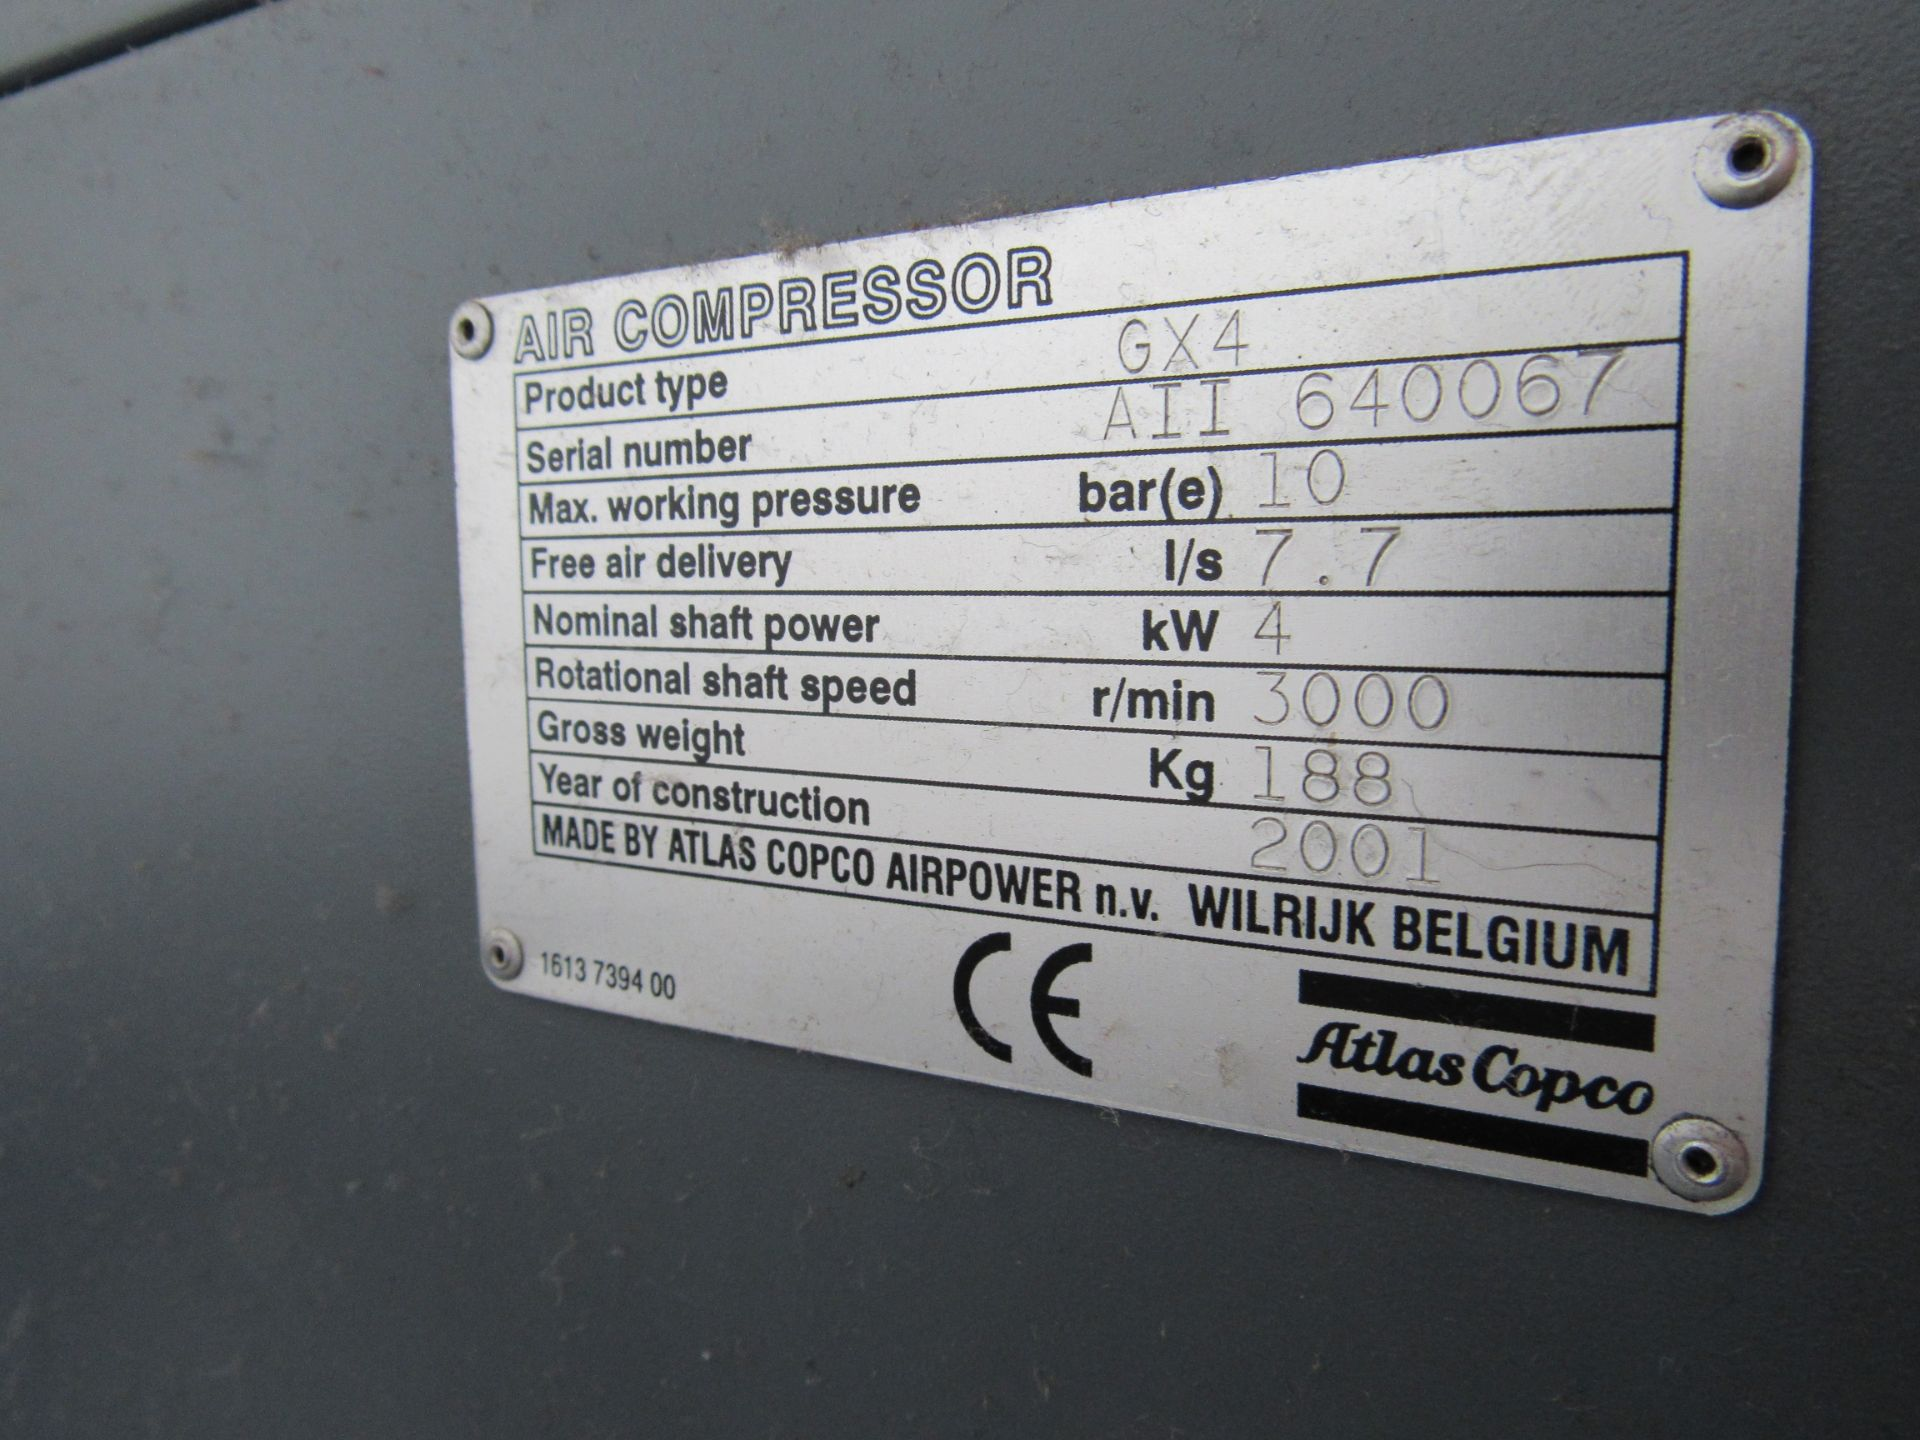 Atlas Copco GX4 Receiver Mounted Compressor, 7847 Hours, Serial Number AII 640067, 2001 - Image 5 of 5